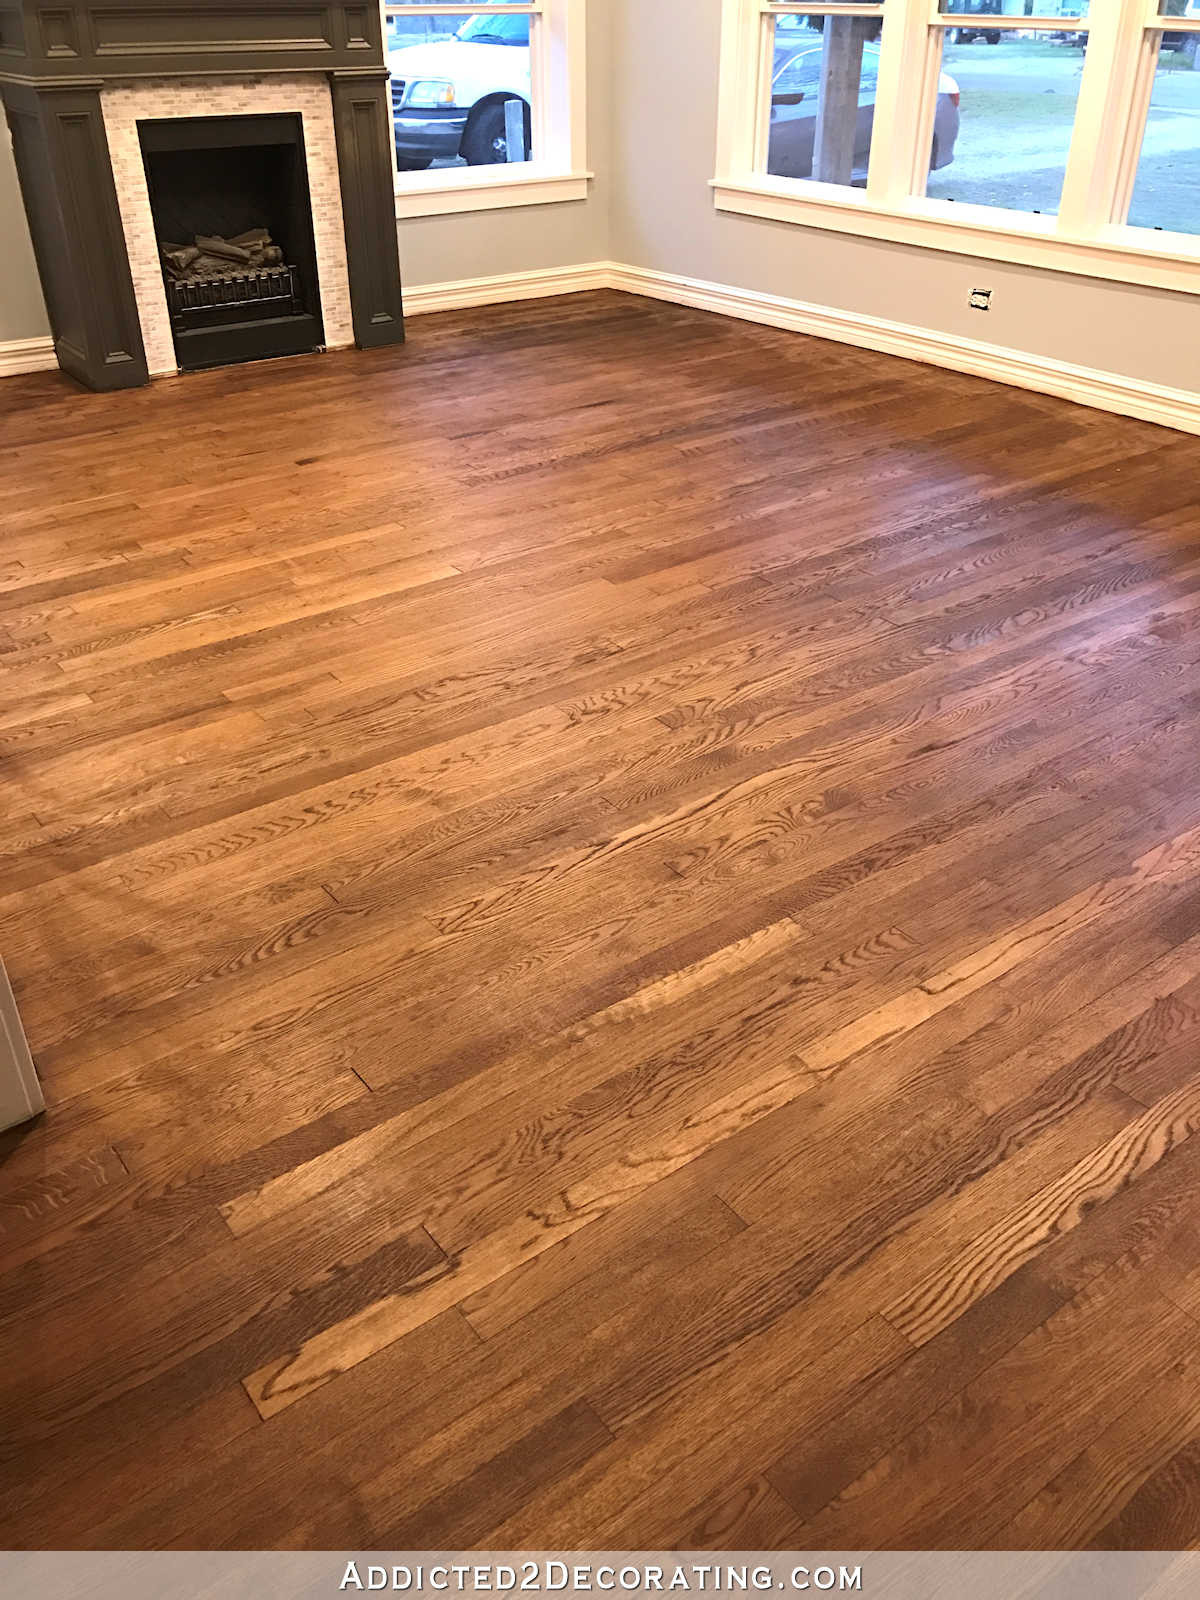 Preparing Hardwood Floors for Refinishing Of Adventures In Staining My Red Oak Hardwood Floors Products Process with Regard to Staining Red Oak Hardwood Floors 8a Living Room and Entryway